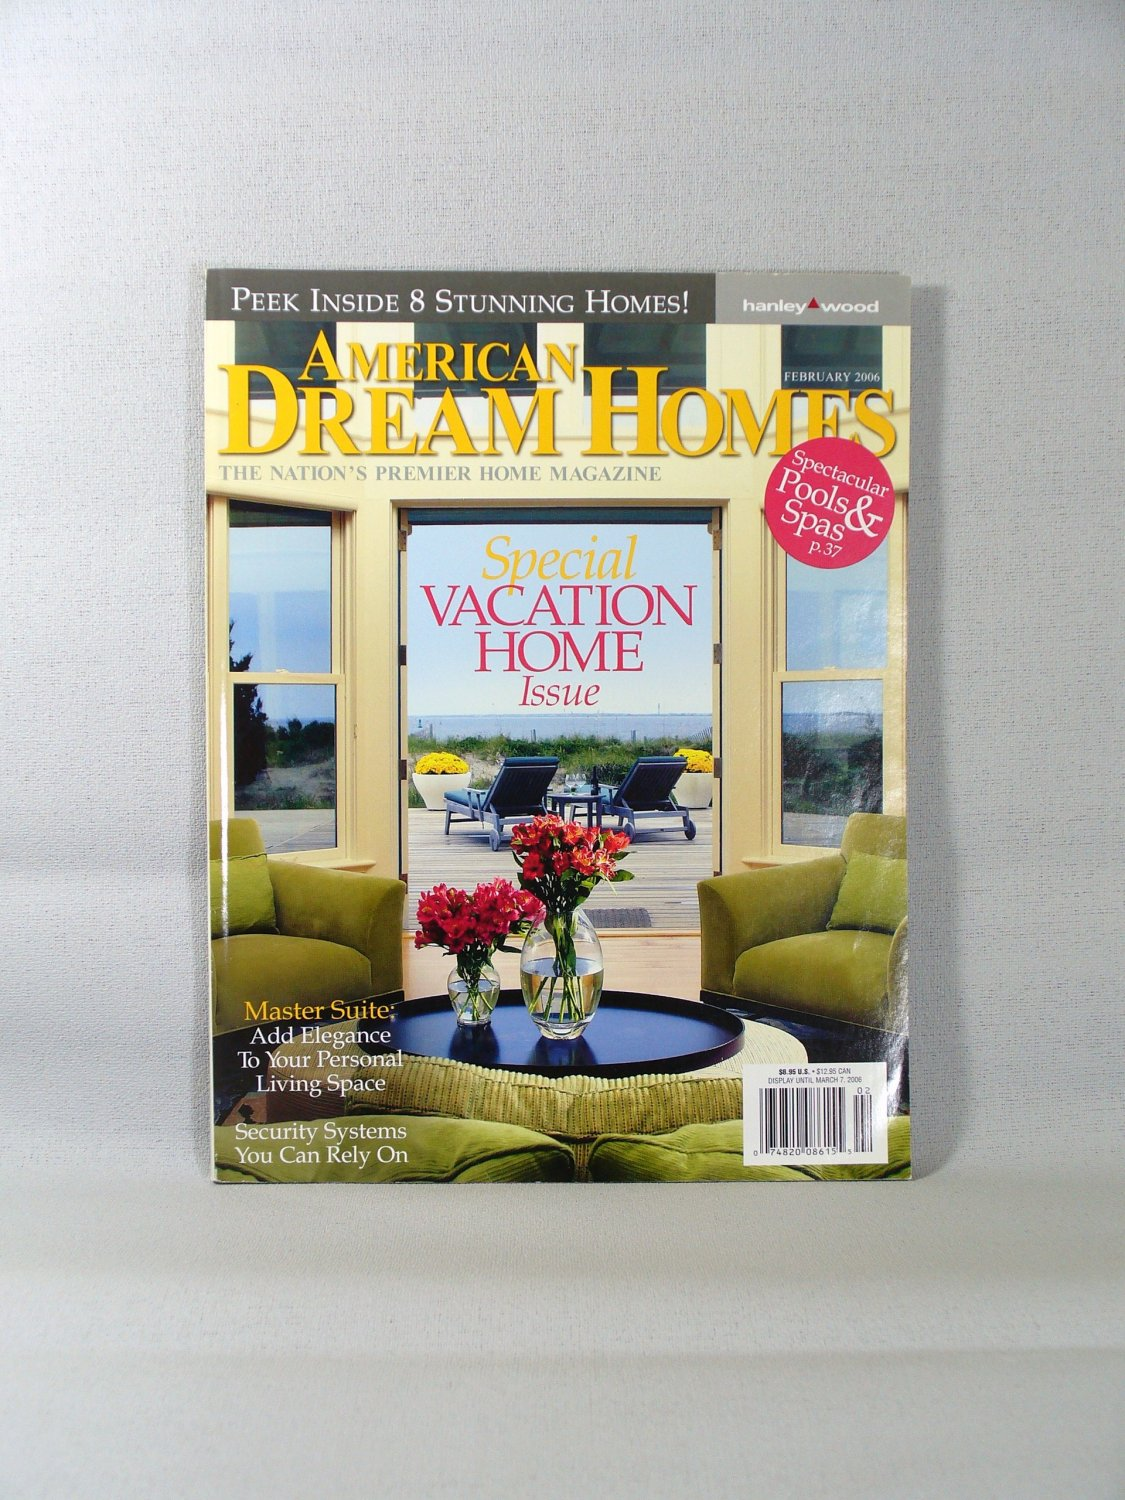 American Dream Homes Magazine Feb 2006 Vacation Home